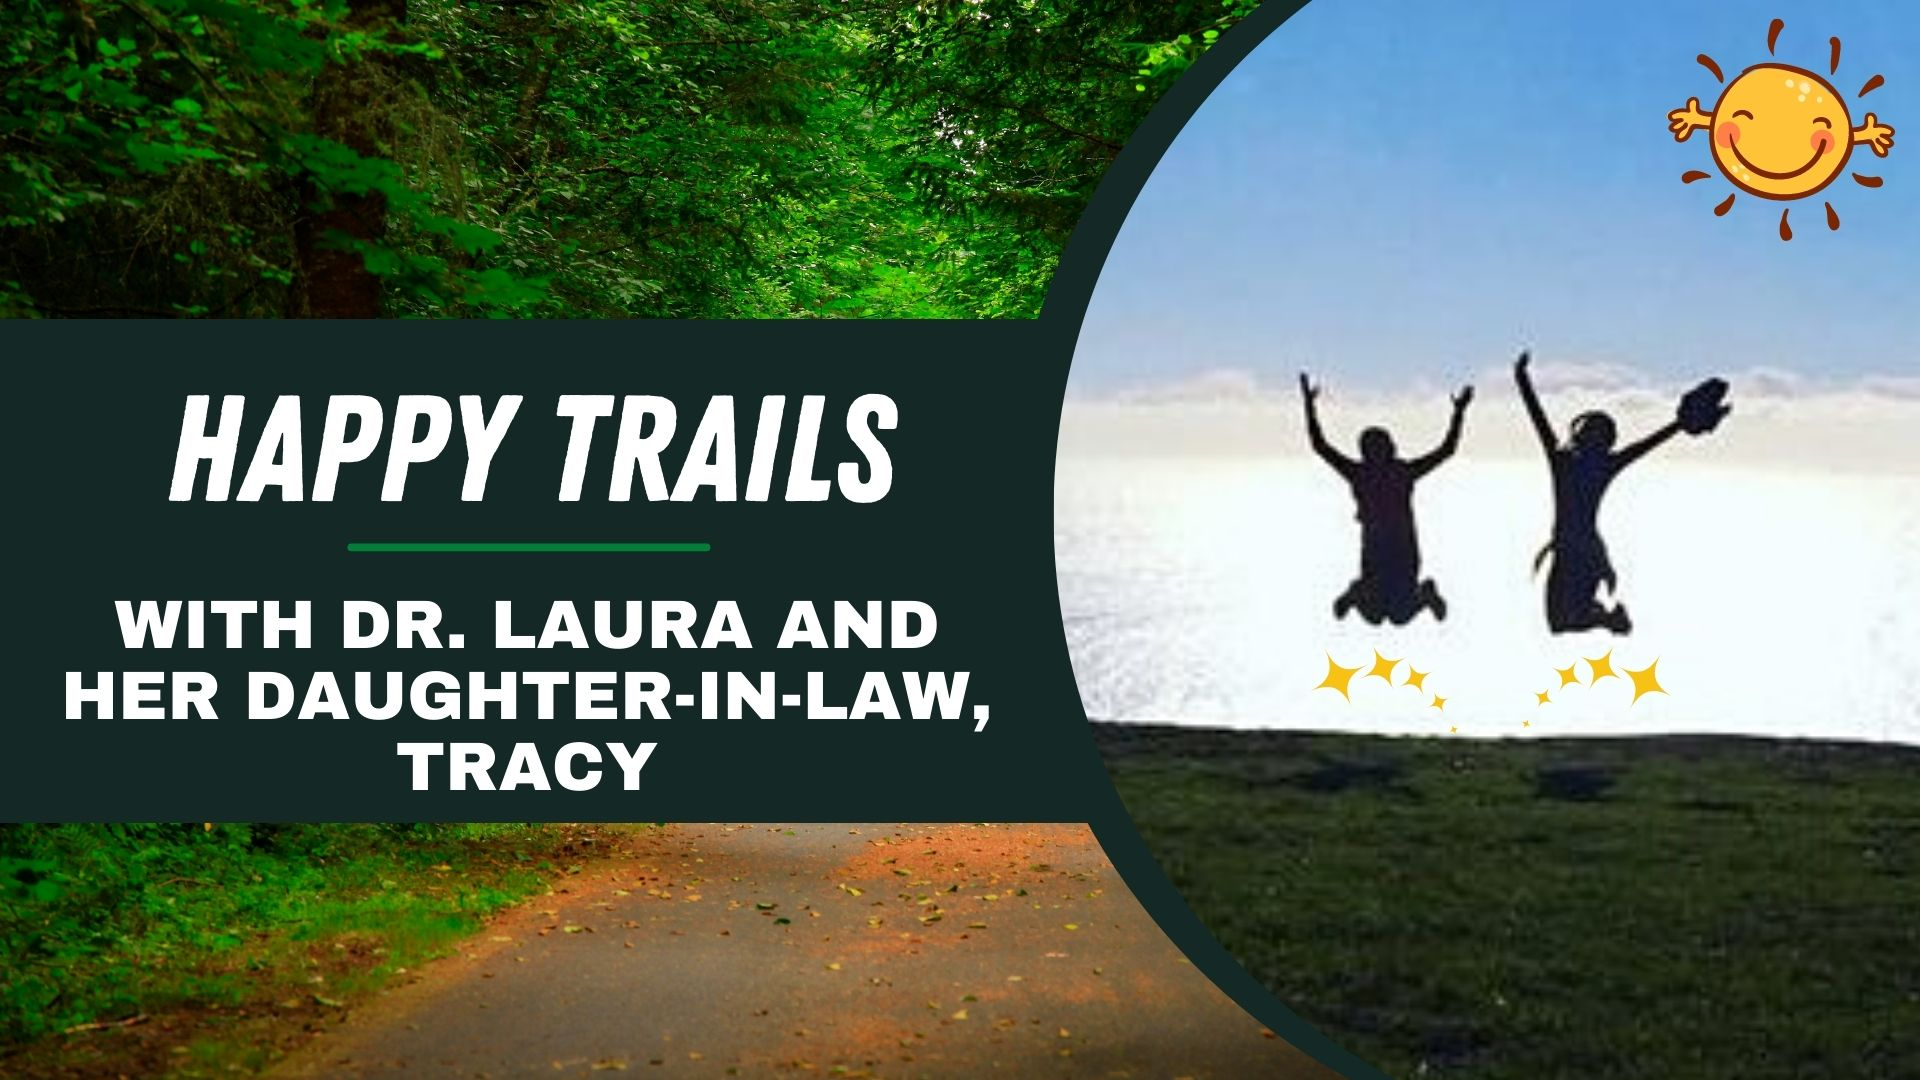 YouTube: Happy Trails with Dr. Laura and her daughter-in-law, Tracy!